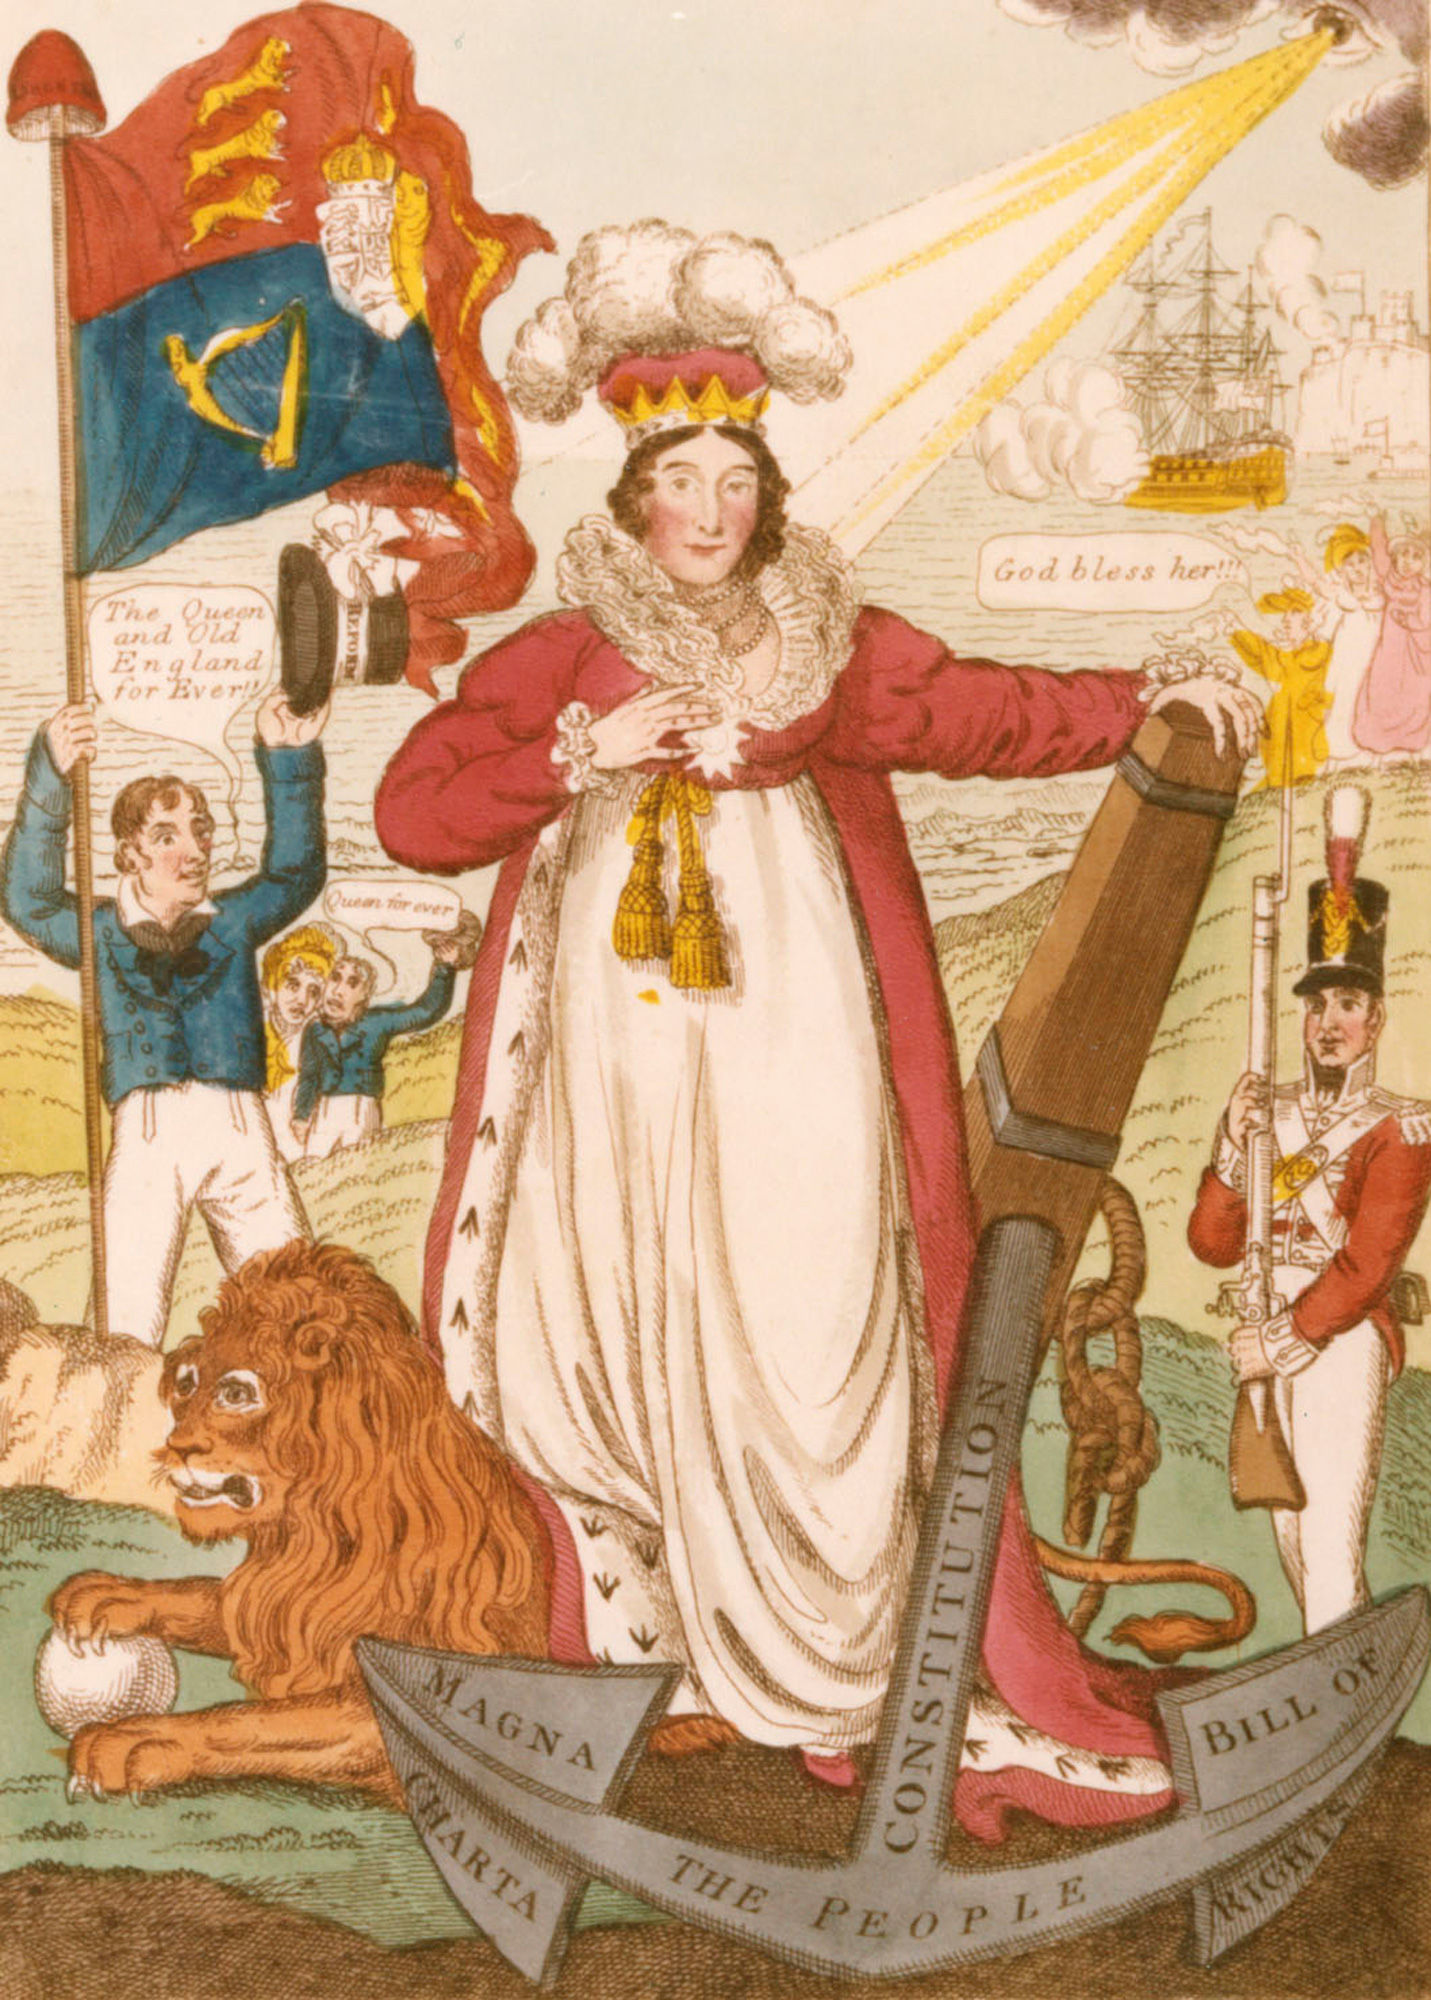 Political caricature of Queen Caroline 'Britain's Best Hope, England's Sheet Anchor'